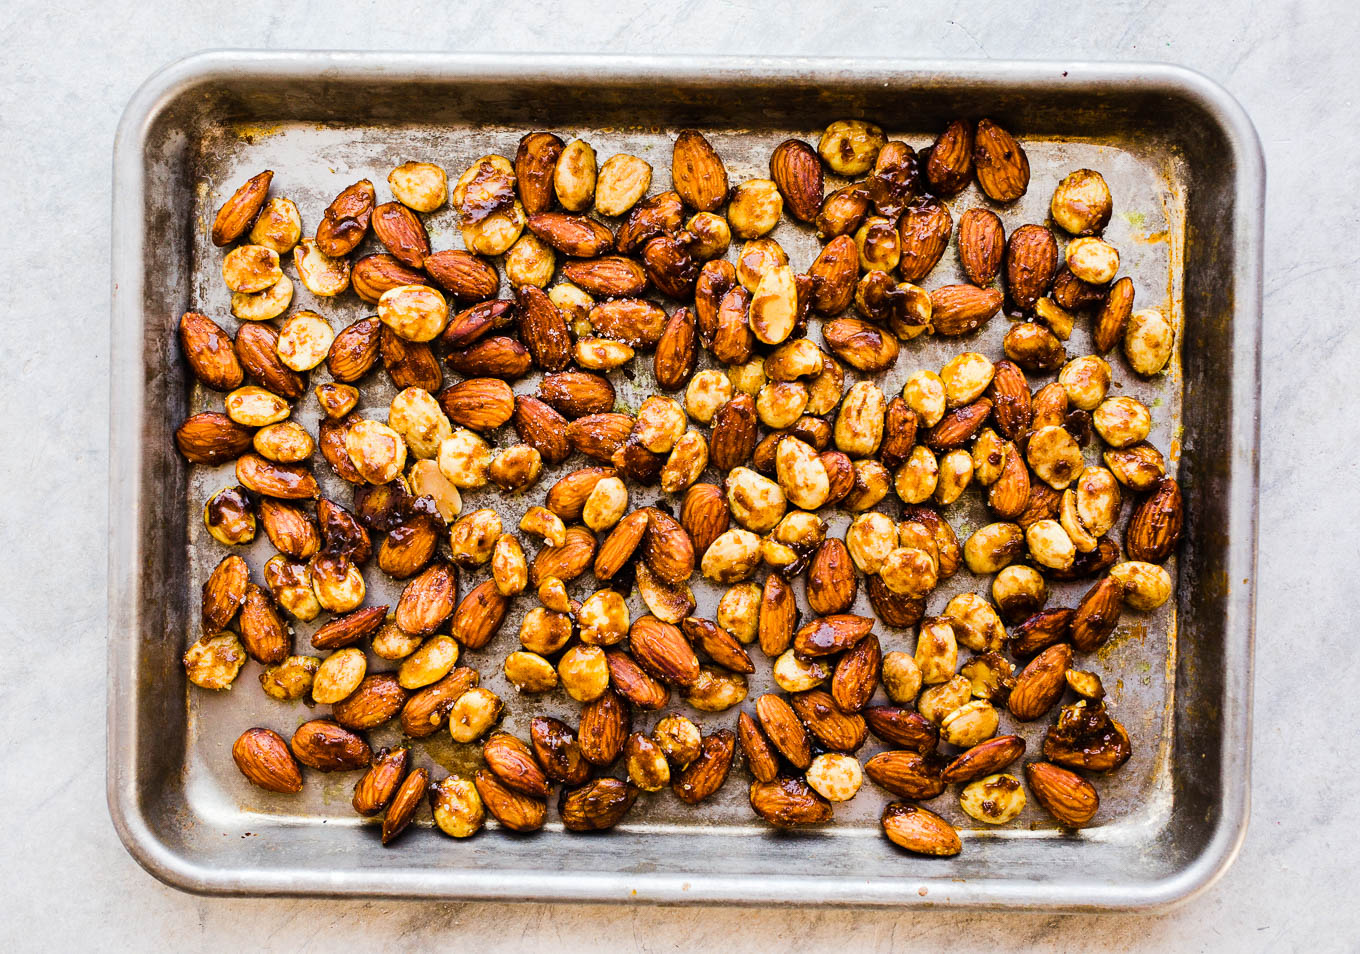 spiced almonds on baking sheet